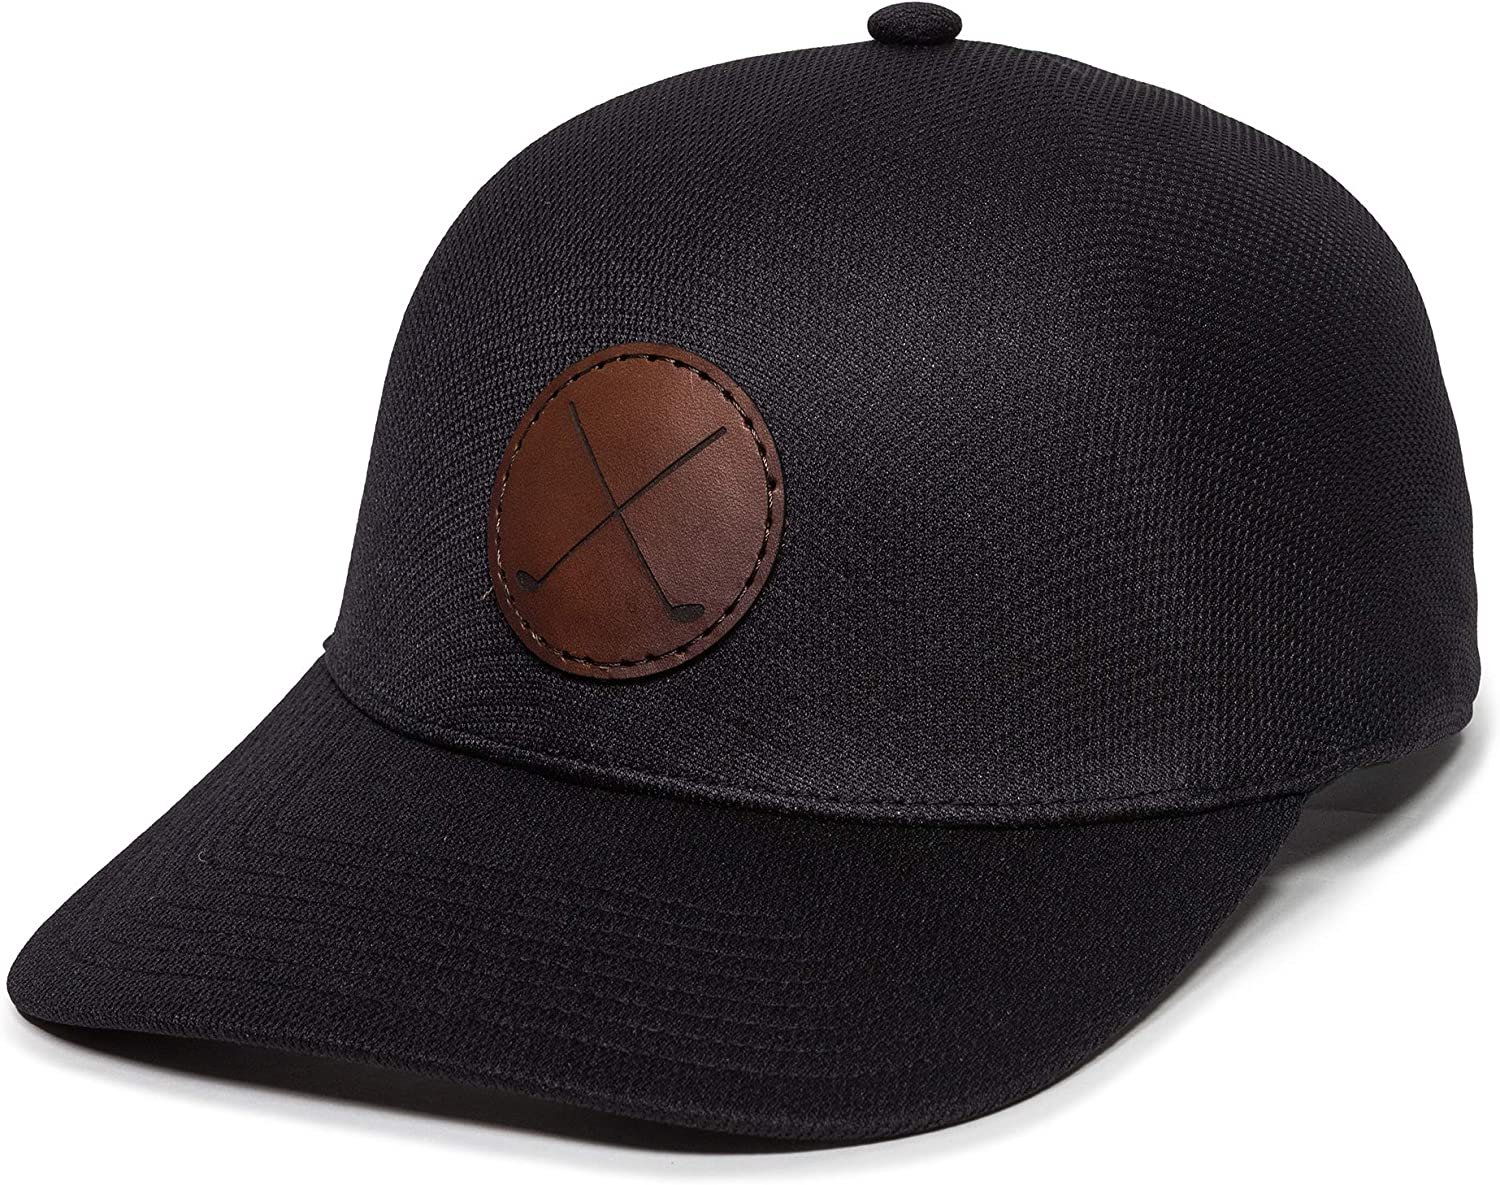 Golf Clubs Leather Patch OneTouch Hat - Adjustable Baseball Cap for Men & Women